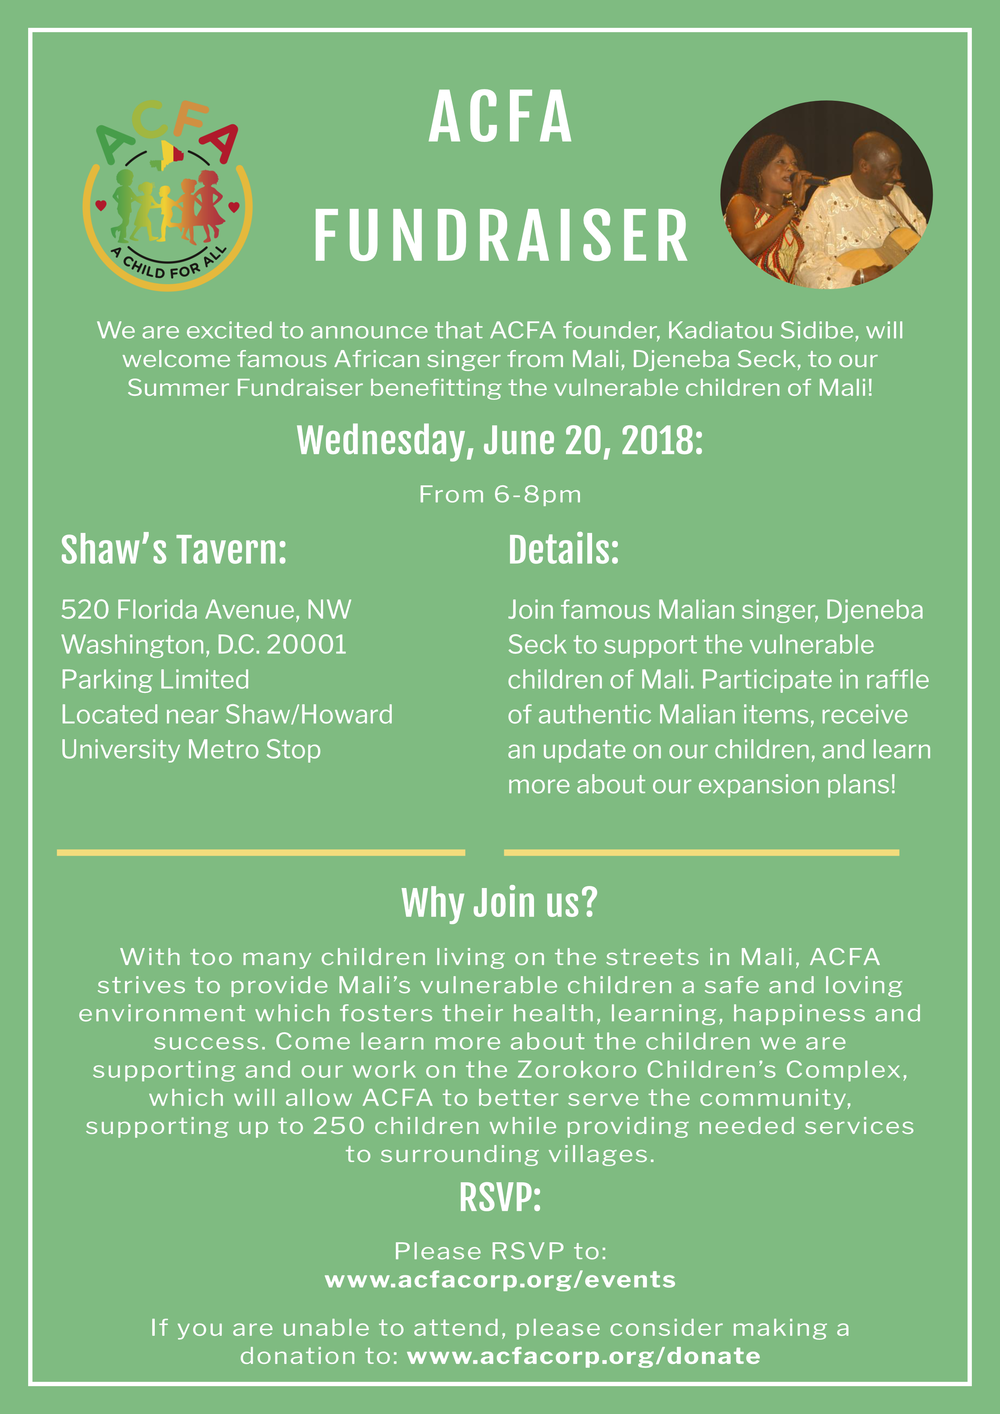 ACFA Fundraiser Flyer.png